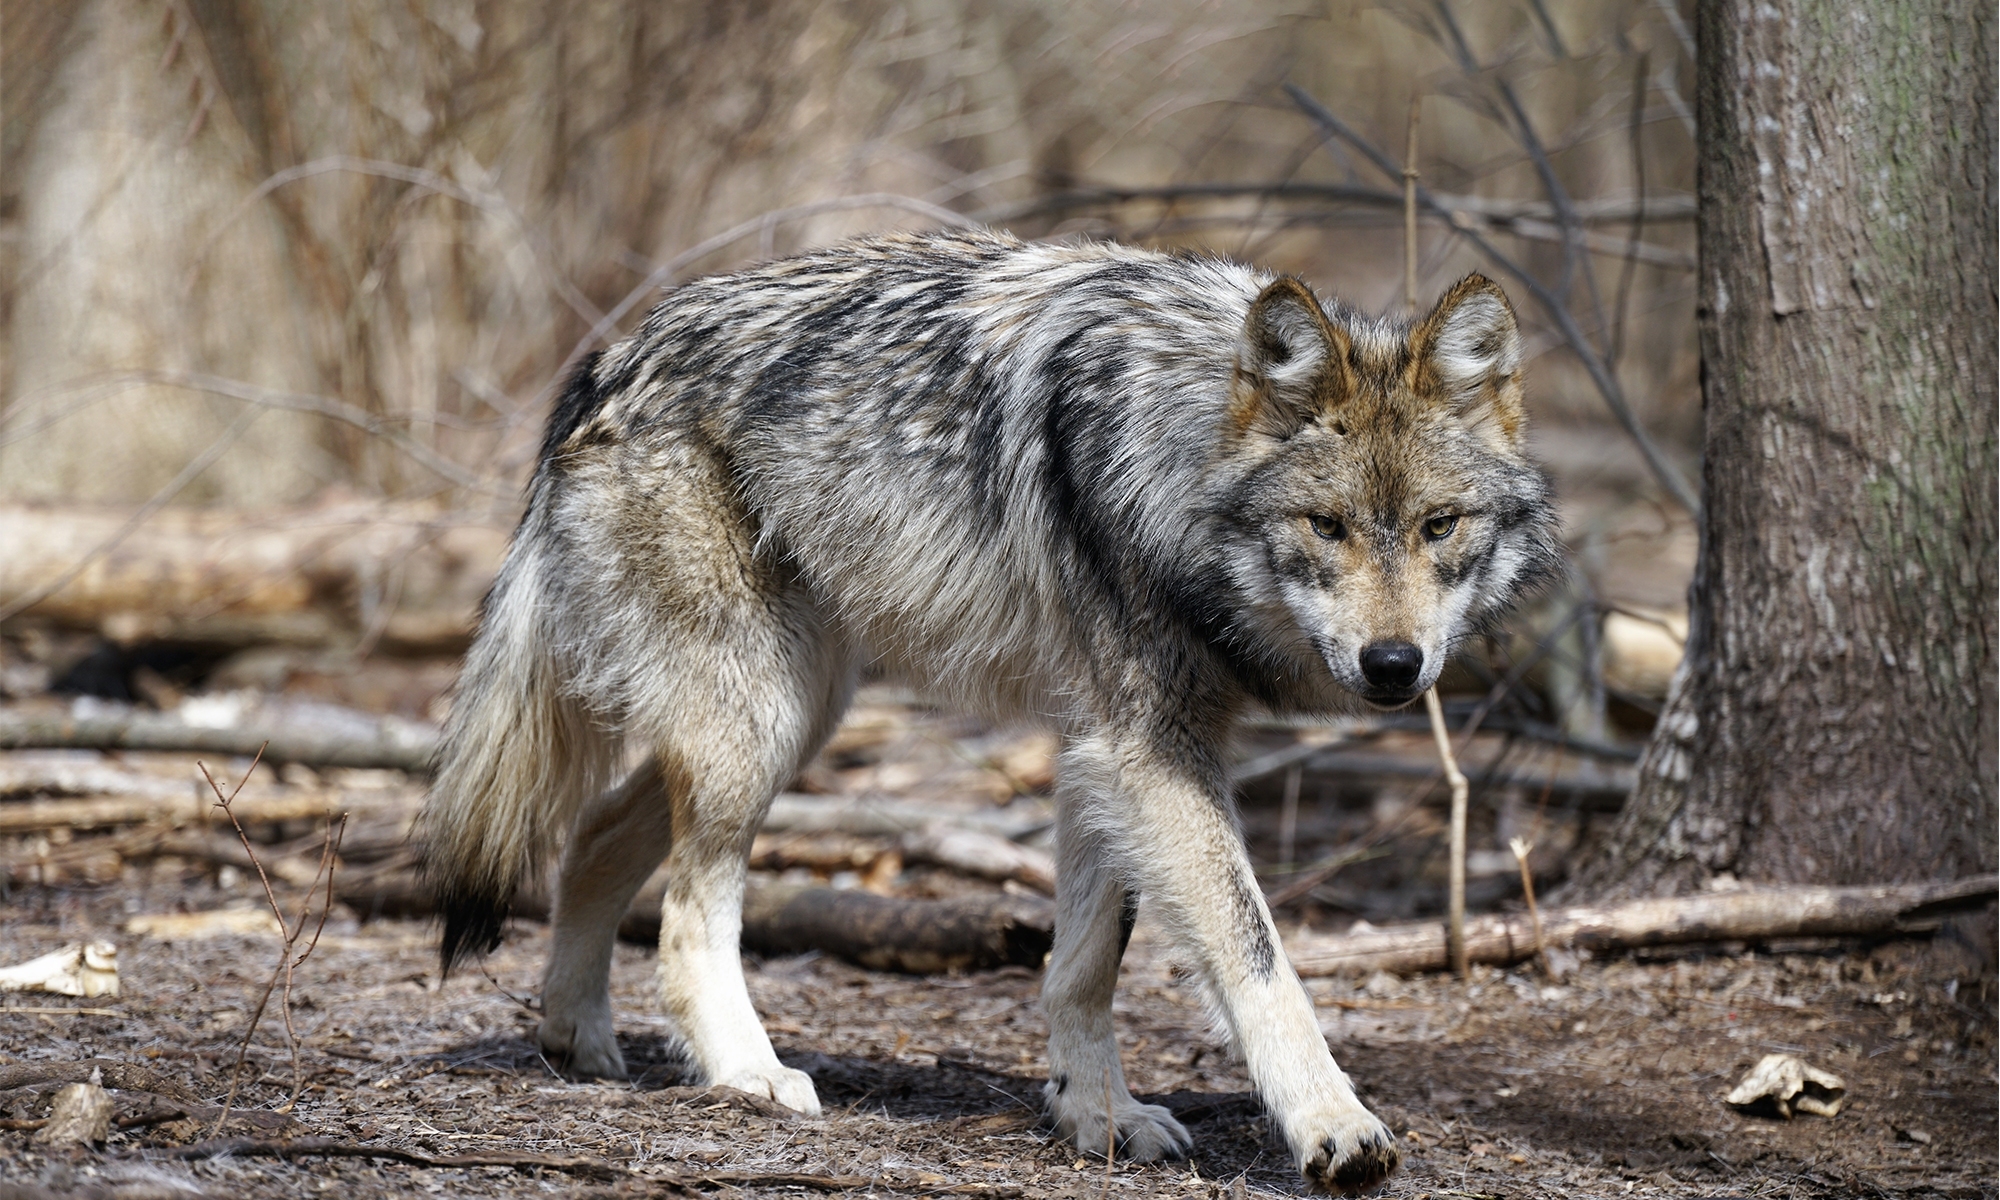 Cattlemen Tell EnviroNews Ranchers Want Mexican Wolves Killed, Despite Being Paid for Livestock Losses